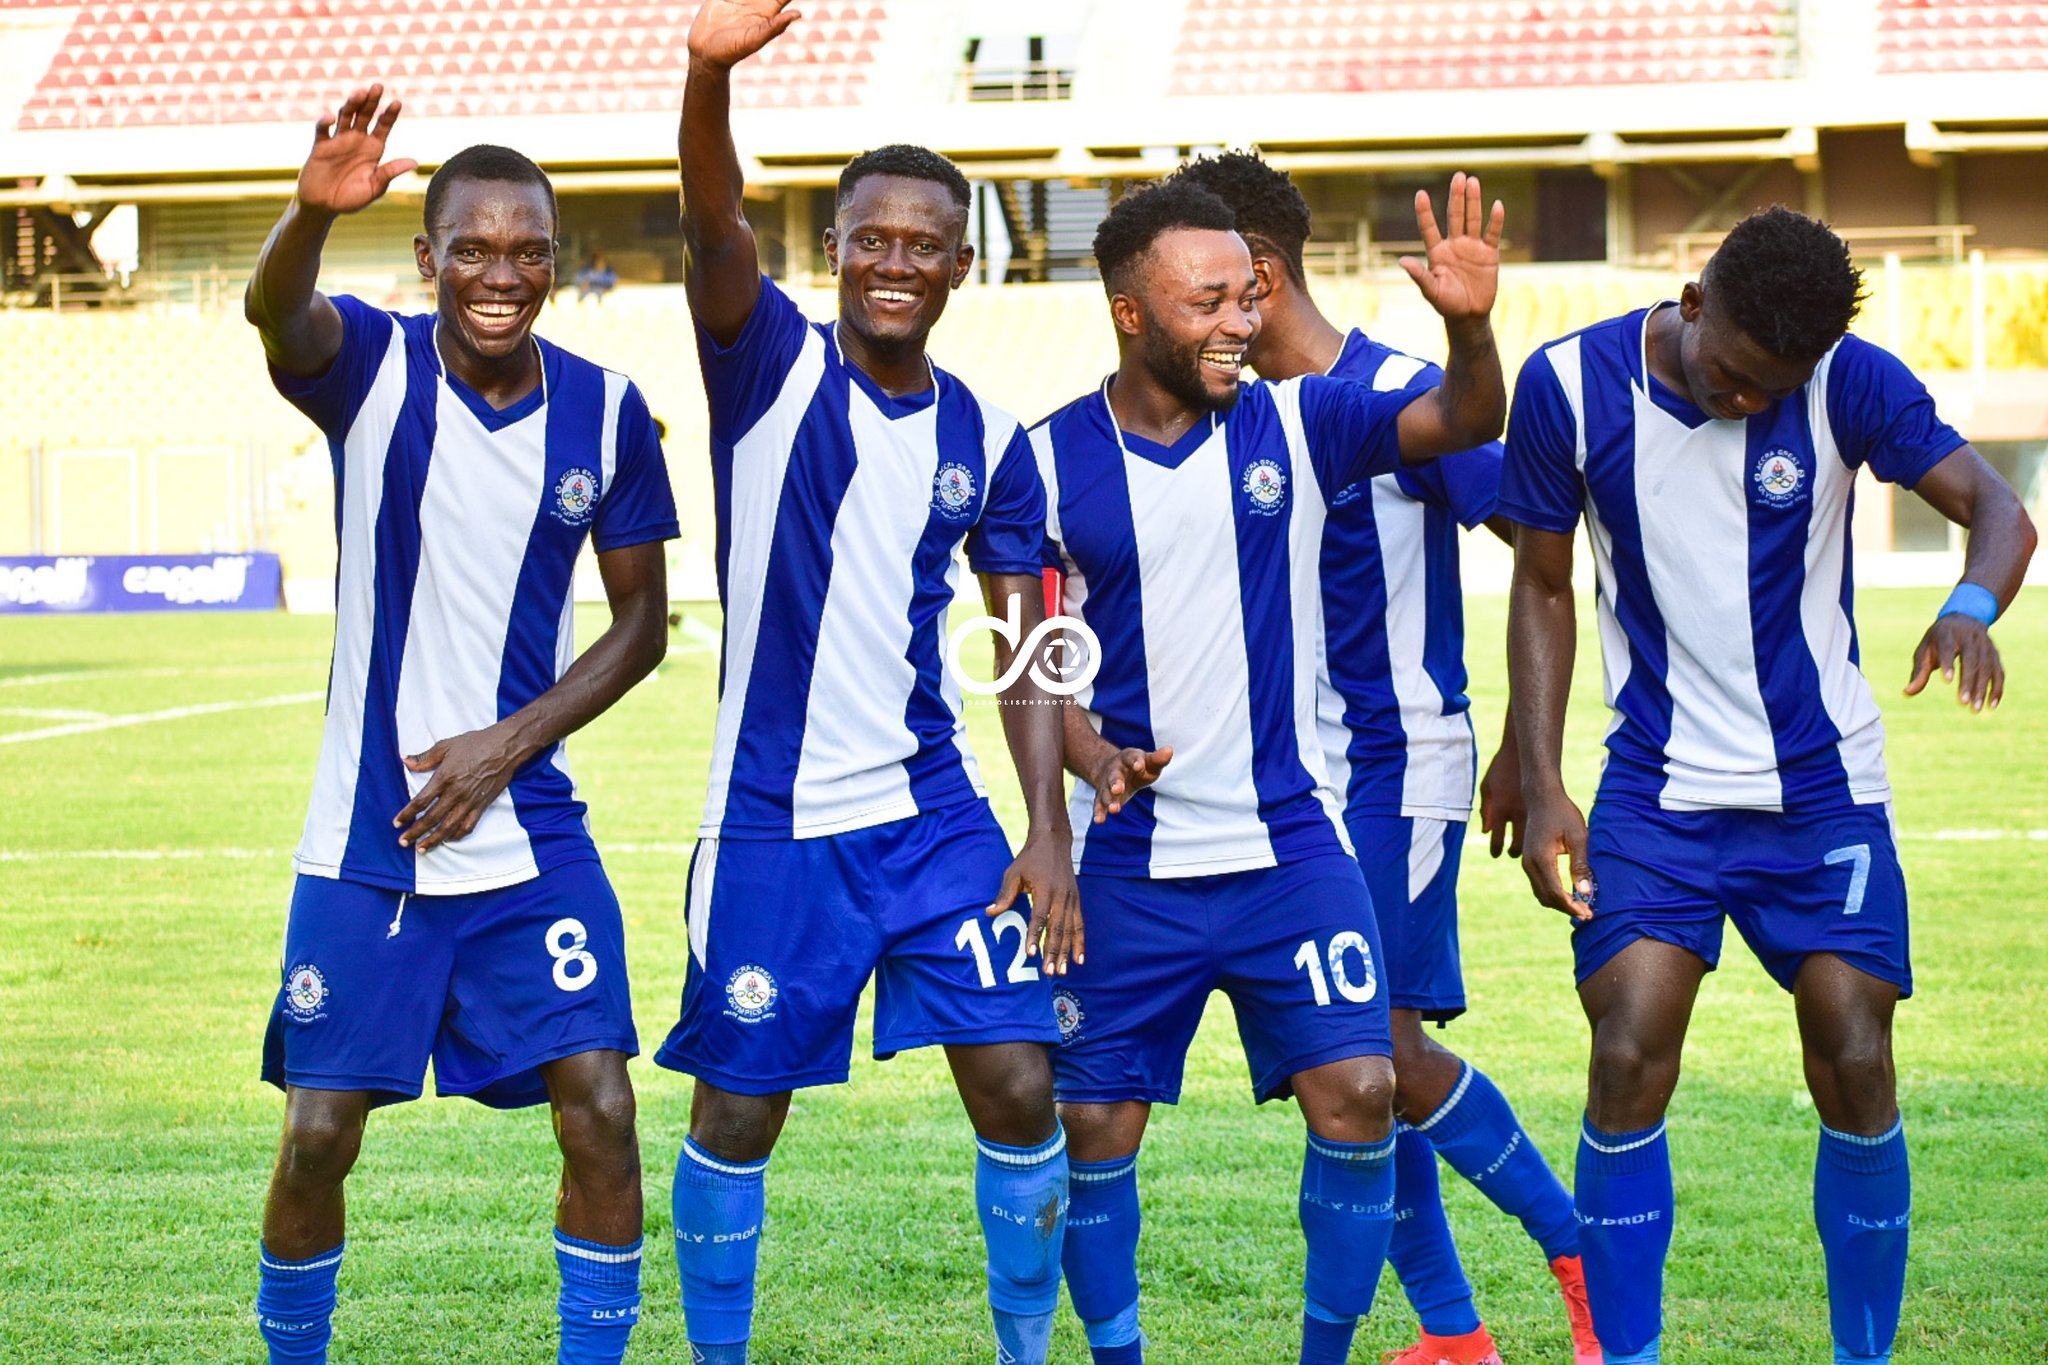 20/21 Ghana Premier League matchday 17: Great Olympics beat Dreams FC 1-0 in Dawu to climb to second